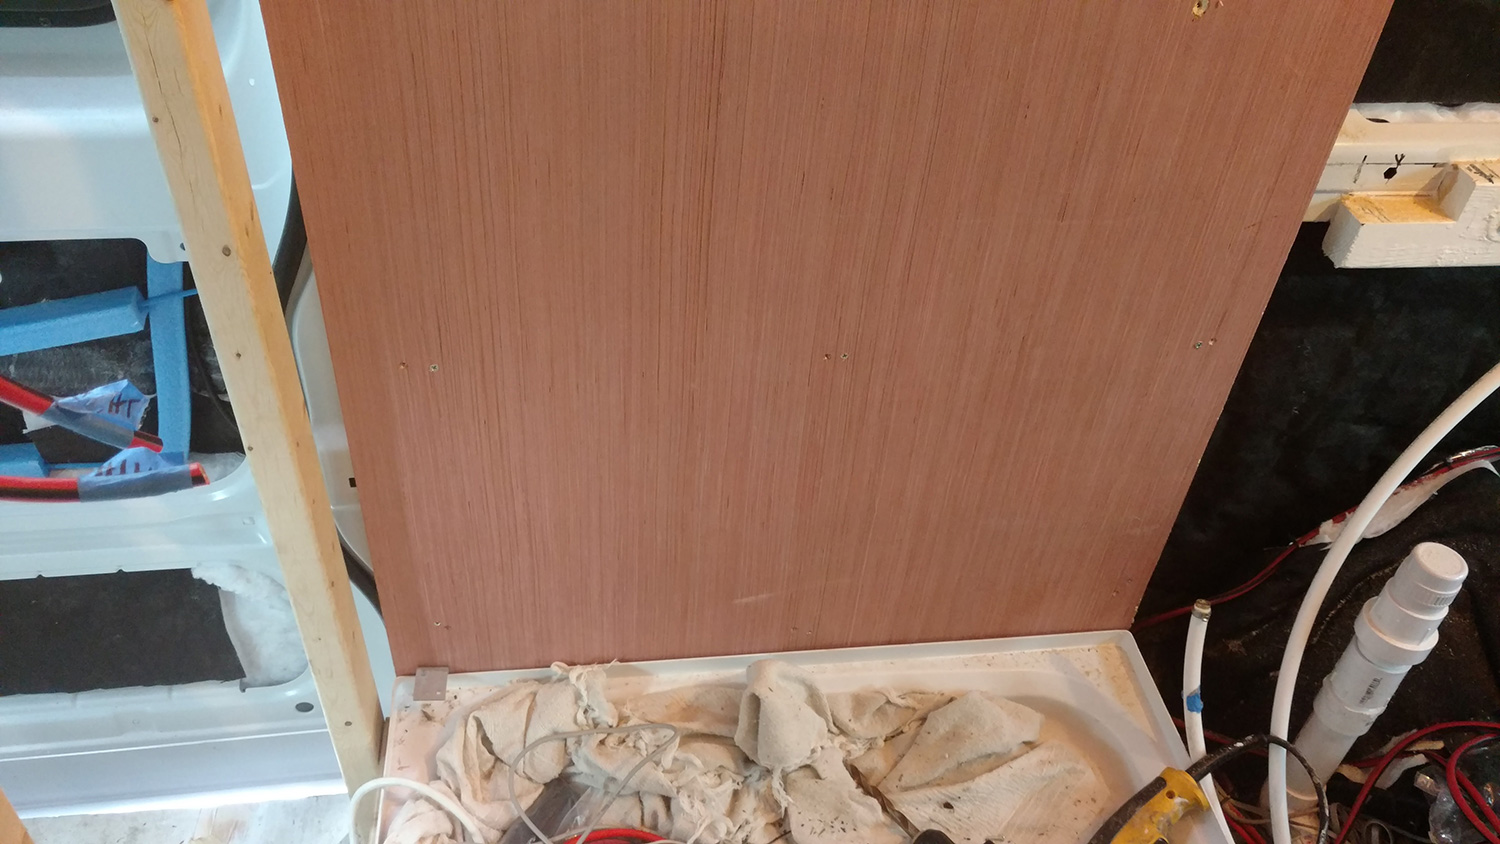 Building A Wet Bath And Shower Into Promaster Diy Camper Van Electrical Wiring Behind Wall Finishing Touches